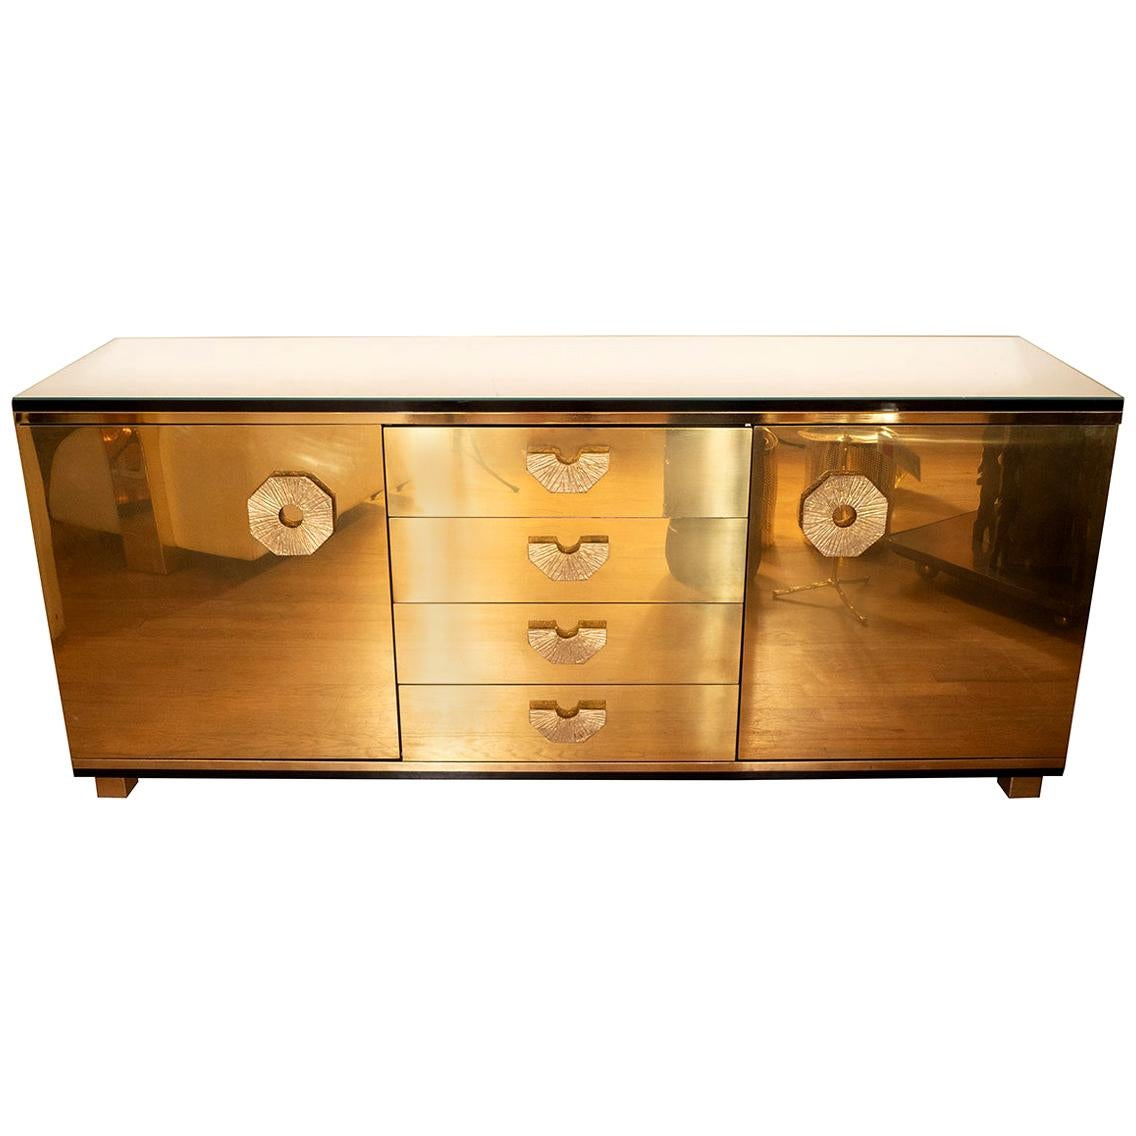 Brass Sideboard with Decorative Textured Details